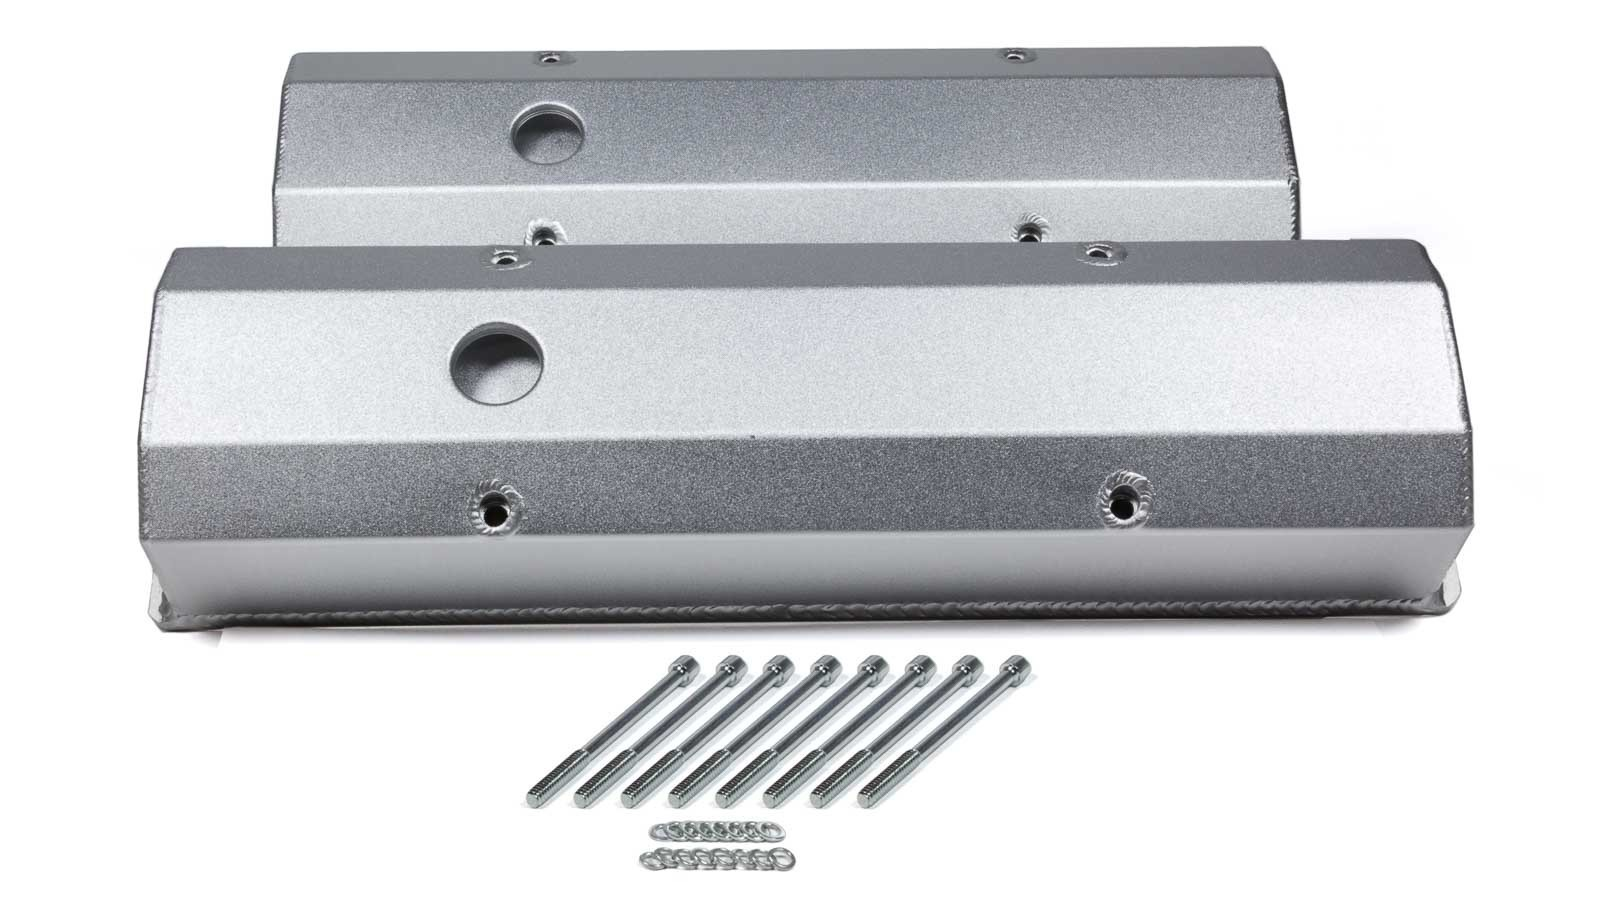 PRW Industries 4035000 Valve Cover, Tall, Breather Hole, Hardware Included, Aluminum, Silver Anodized, Small Block Chevy, Pair